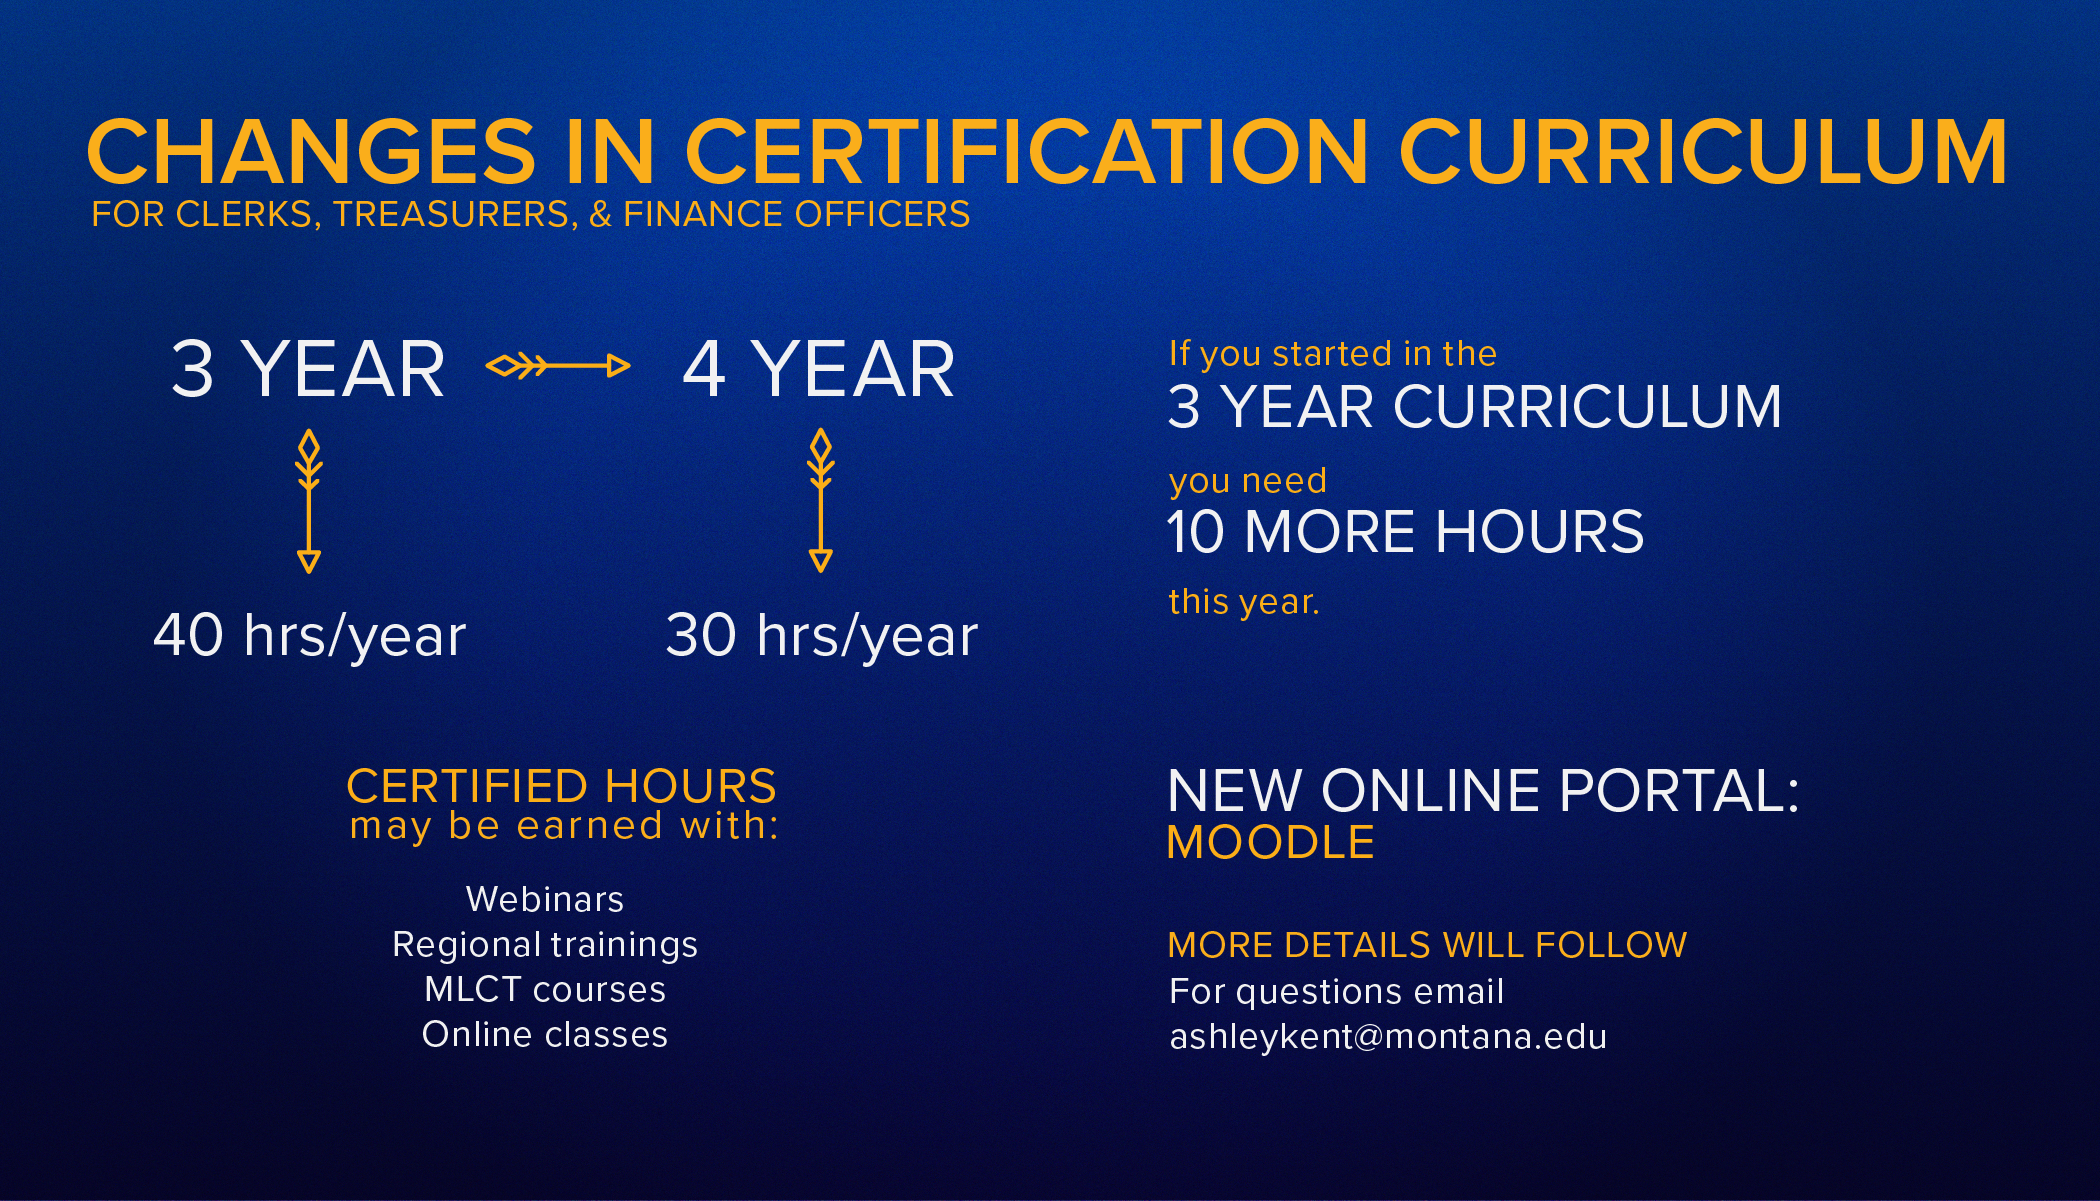 Changes in Certification Curriculum